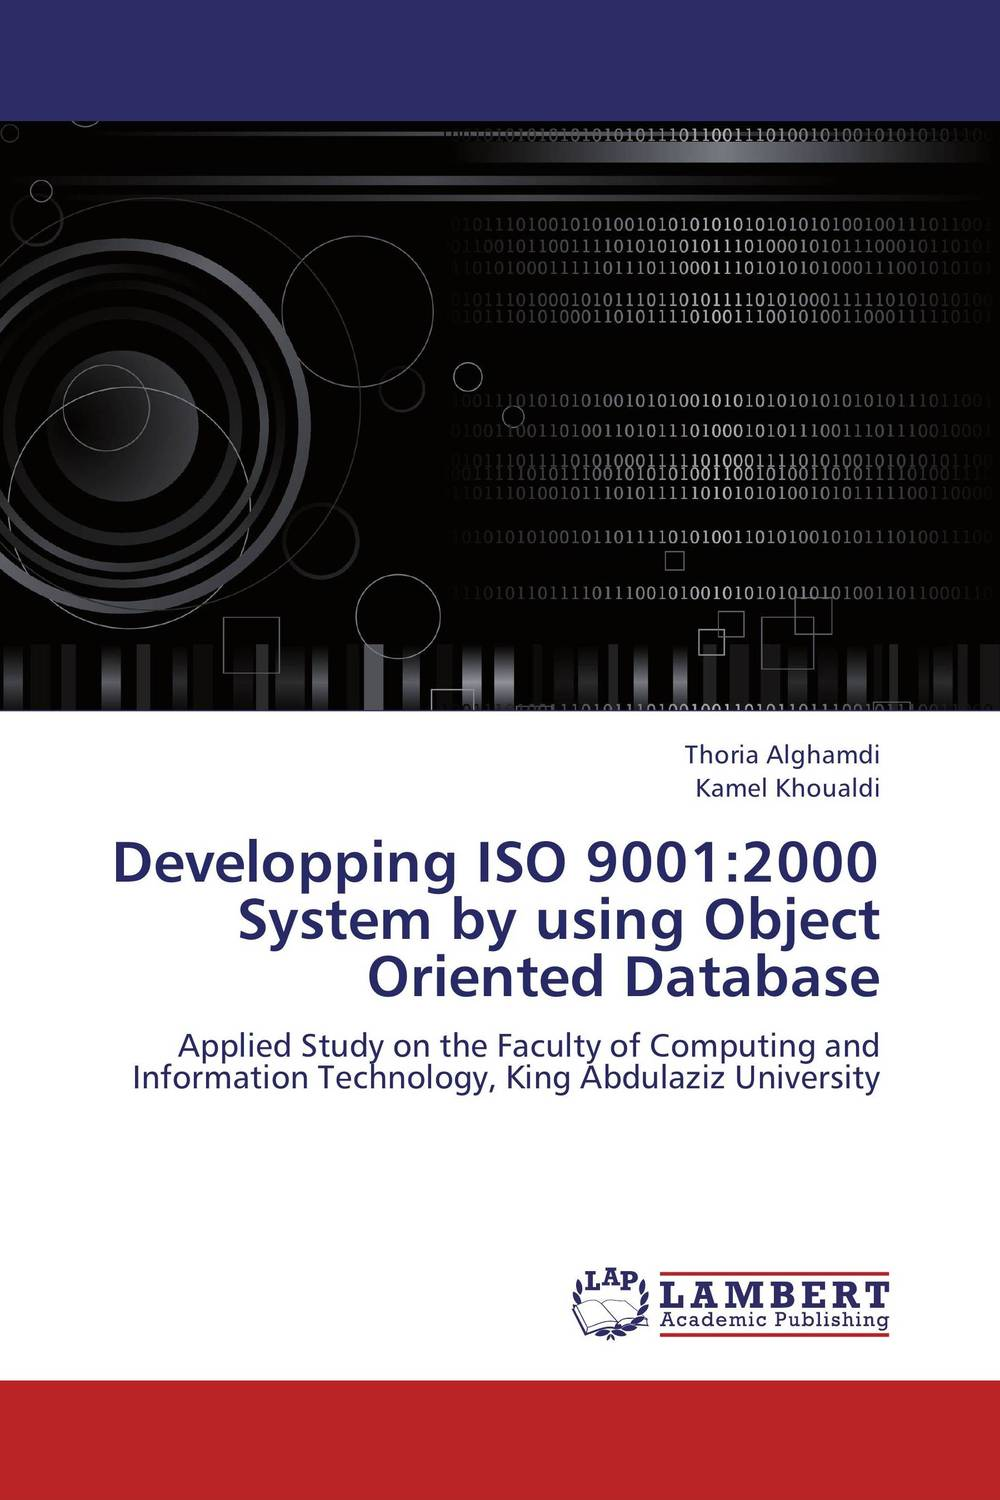 Developping ISO 9001:2000 System by using Object Oriented Database